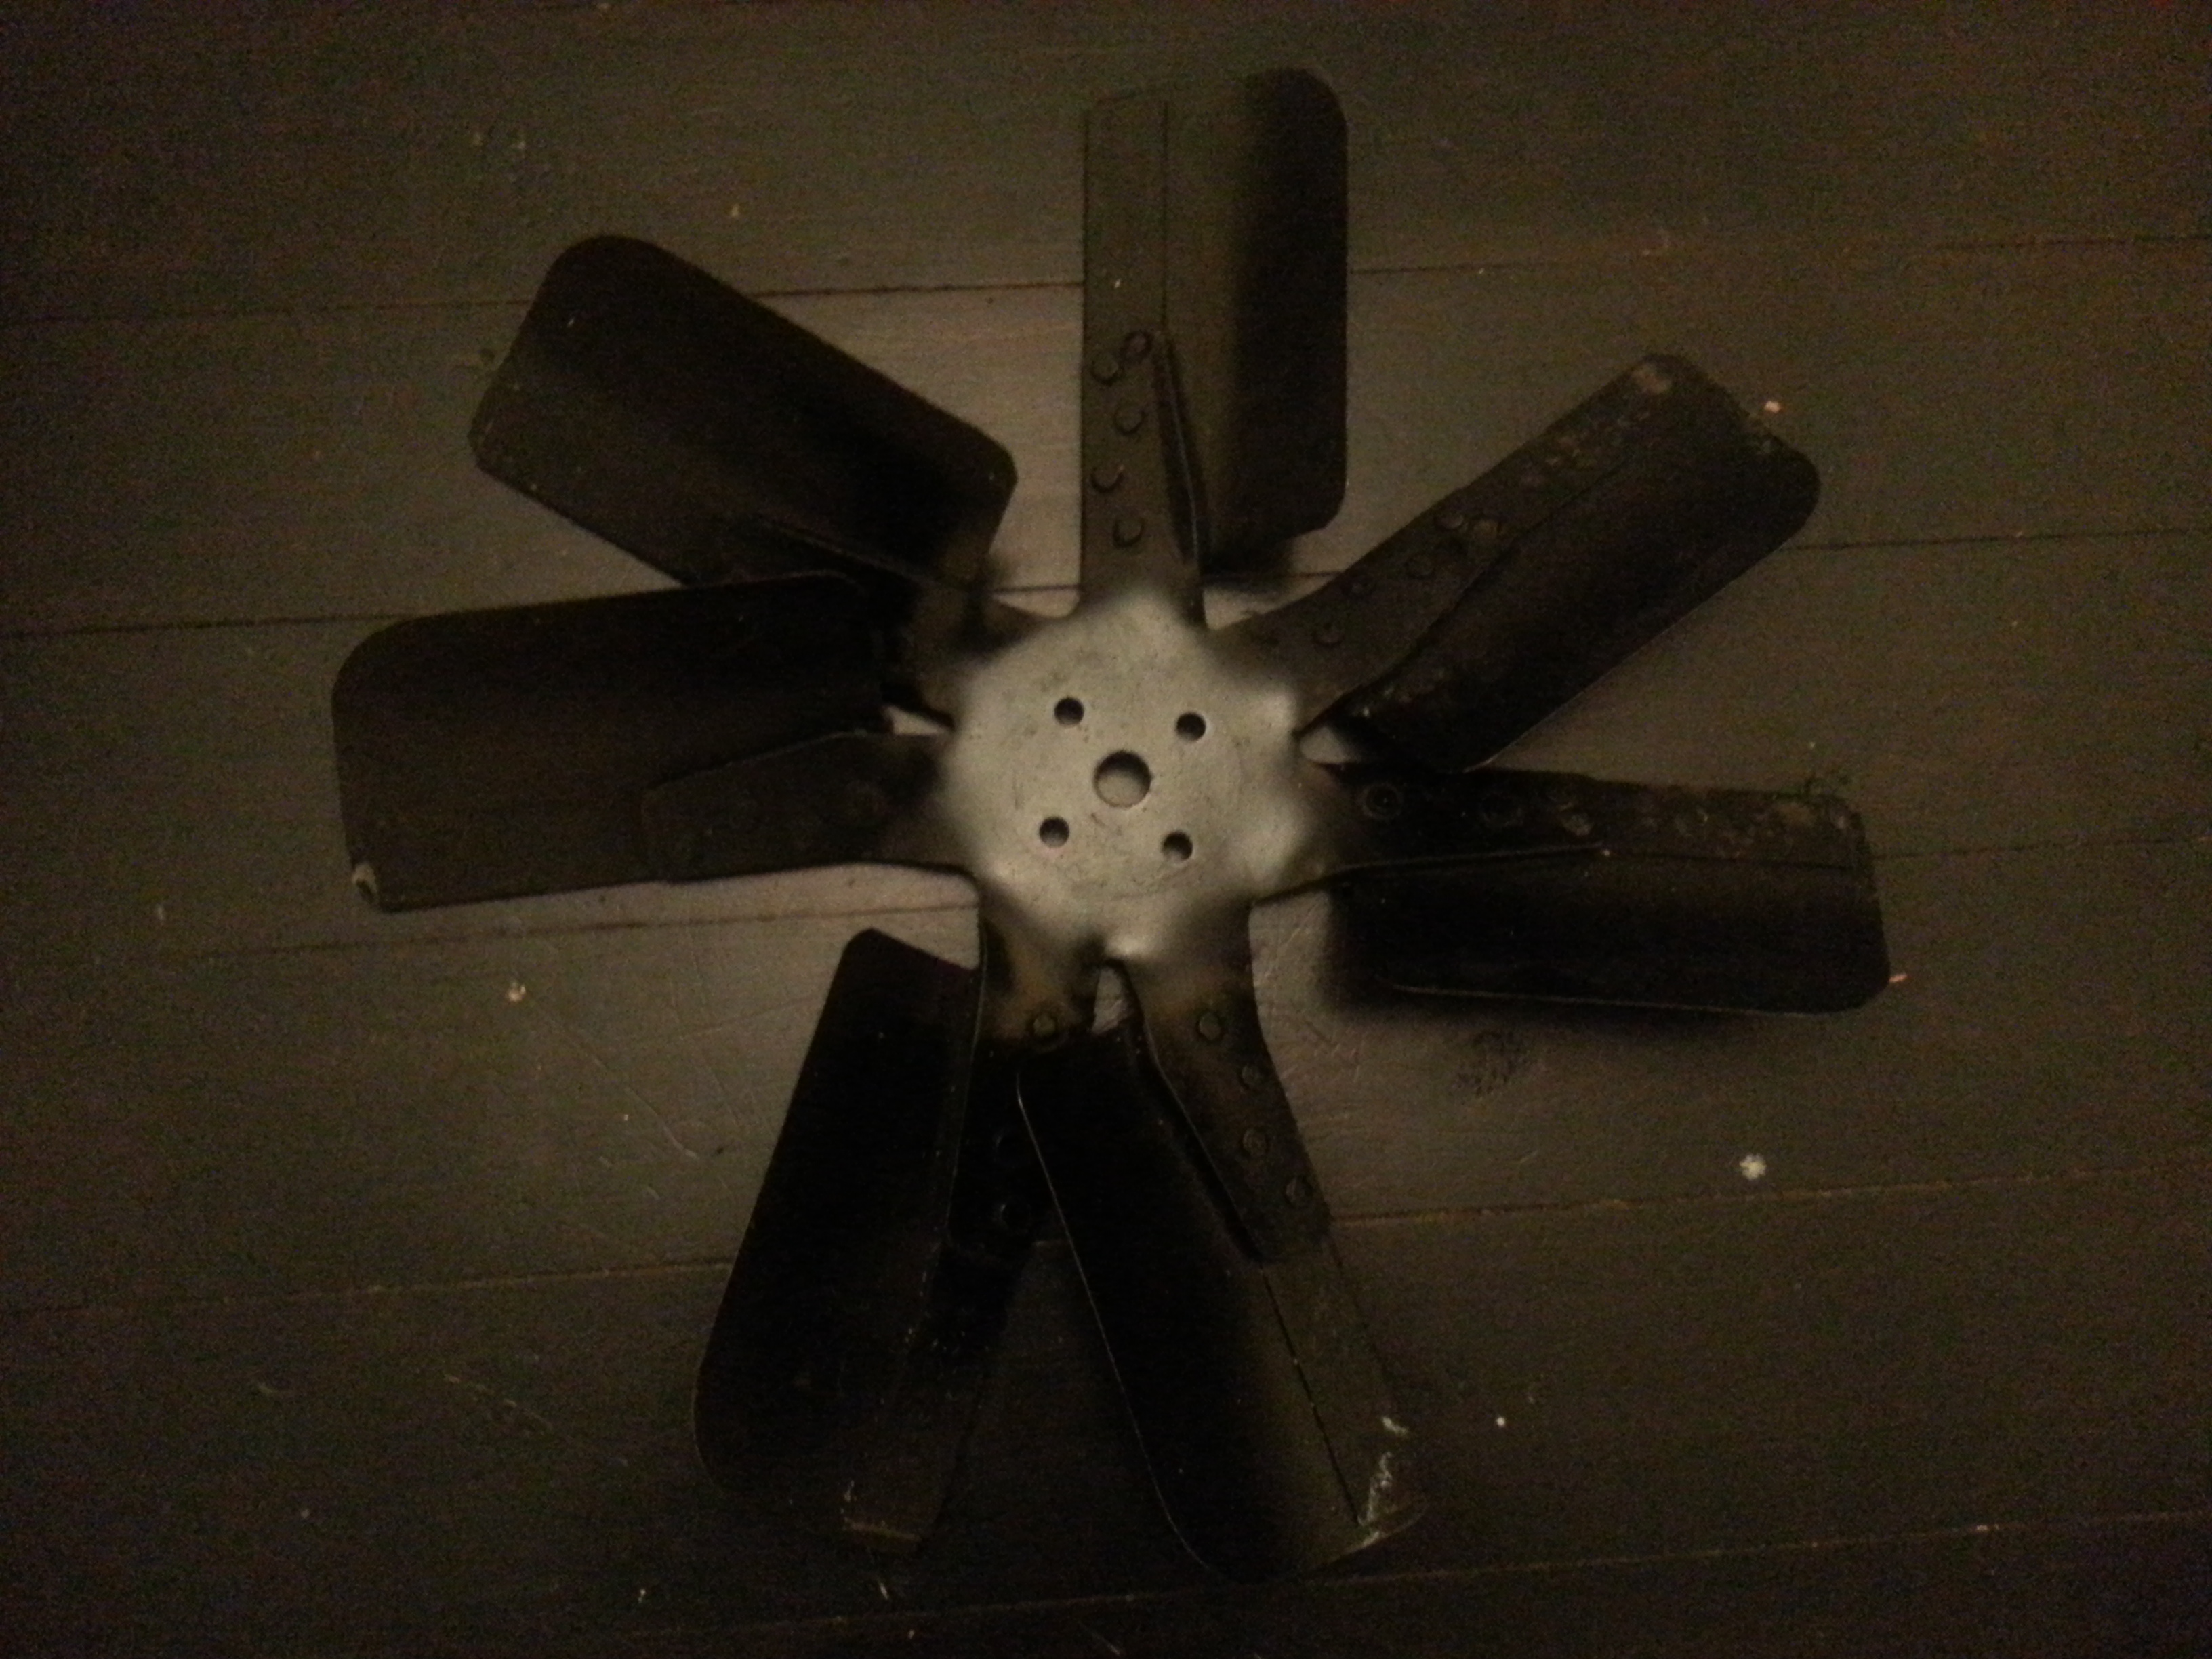 Fan, 7 Blade, 245 and 265 with Air Conditioning, Salvaged